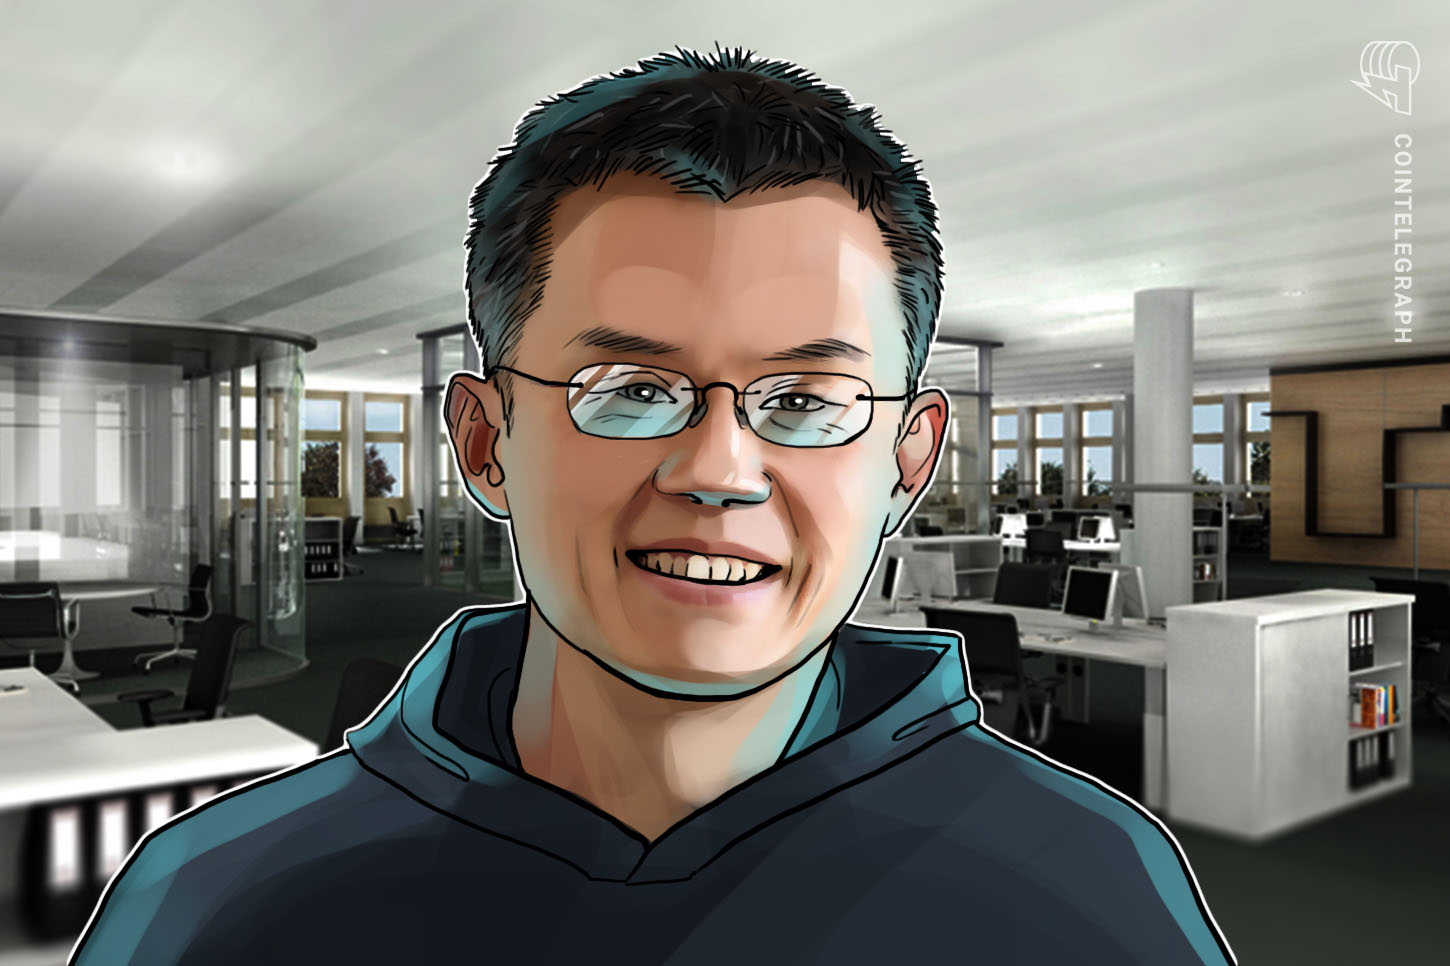 Binance CEO wants more Ethereum-based DeFi projects to join his platform